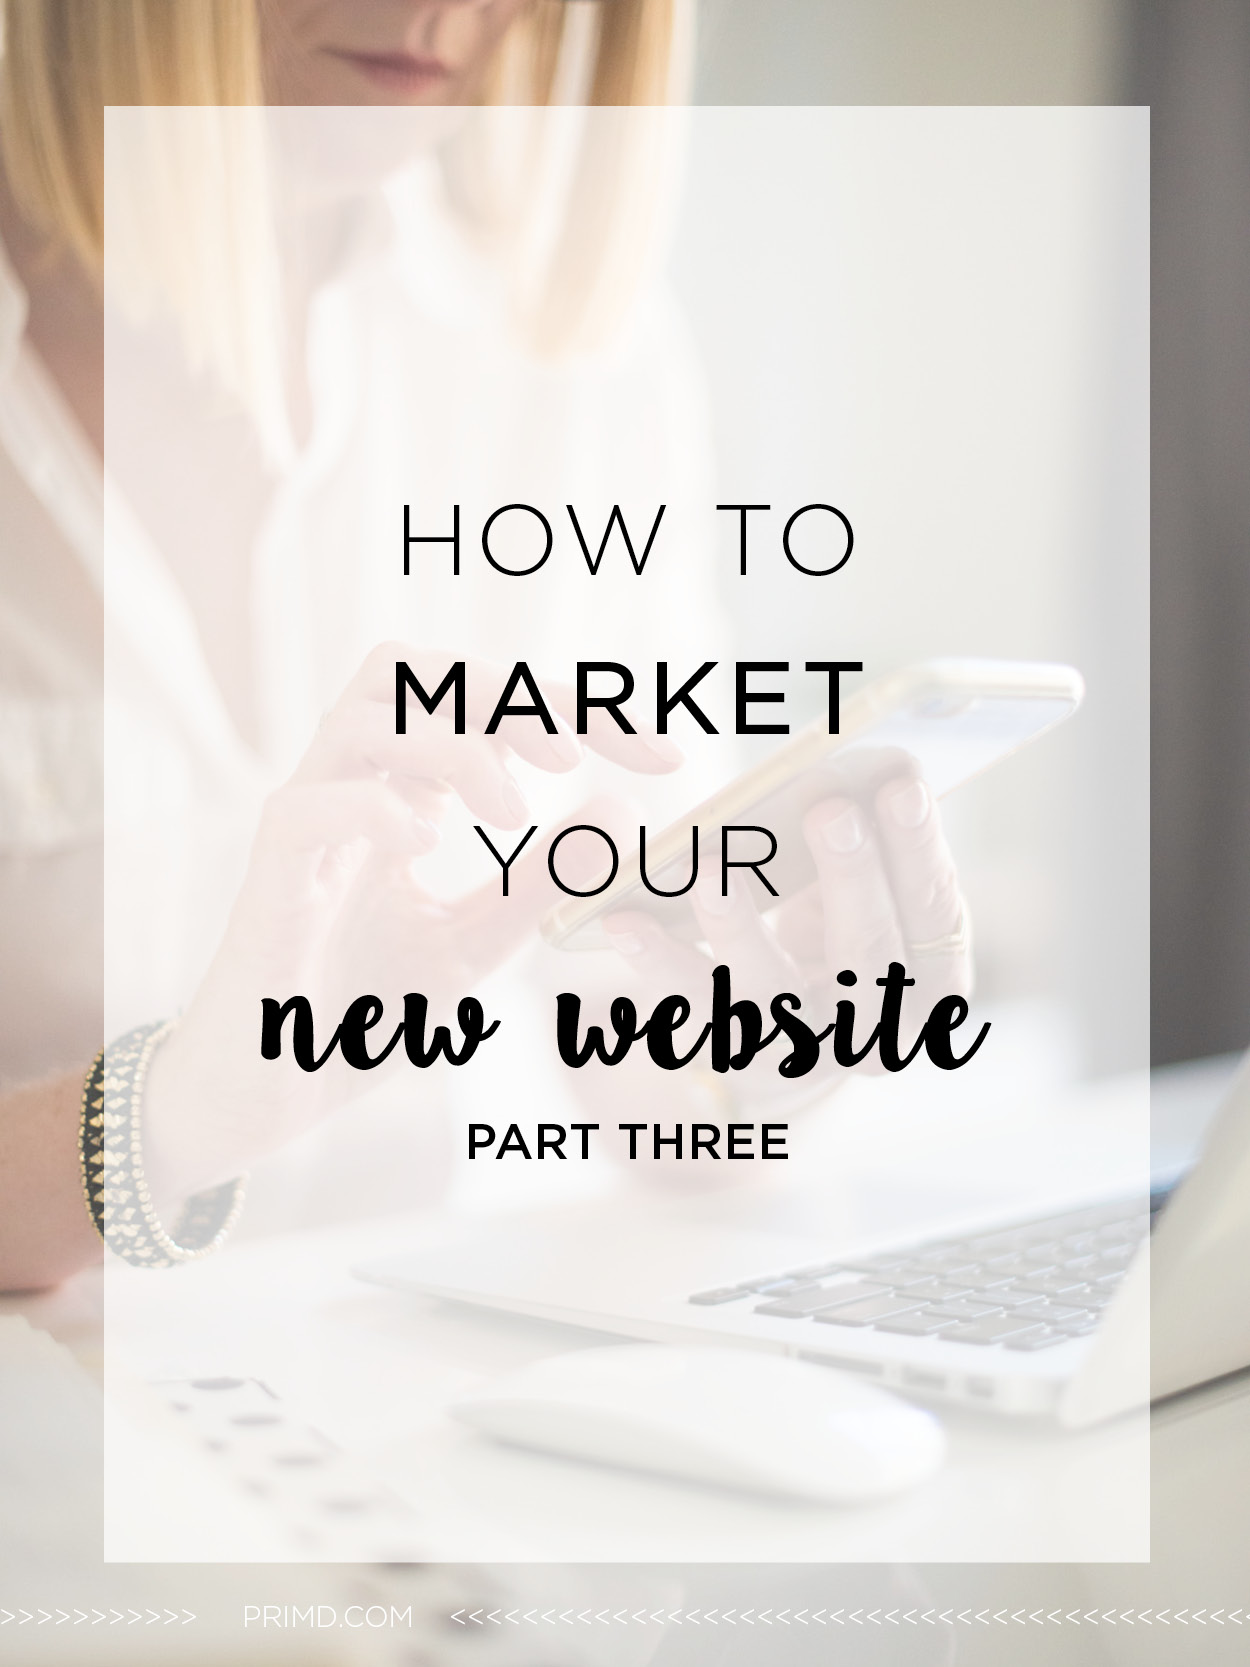 Primd Marketing - How to Market Your New Website - Part 3